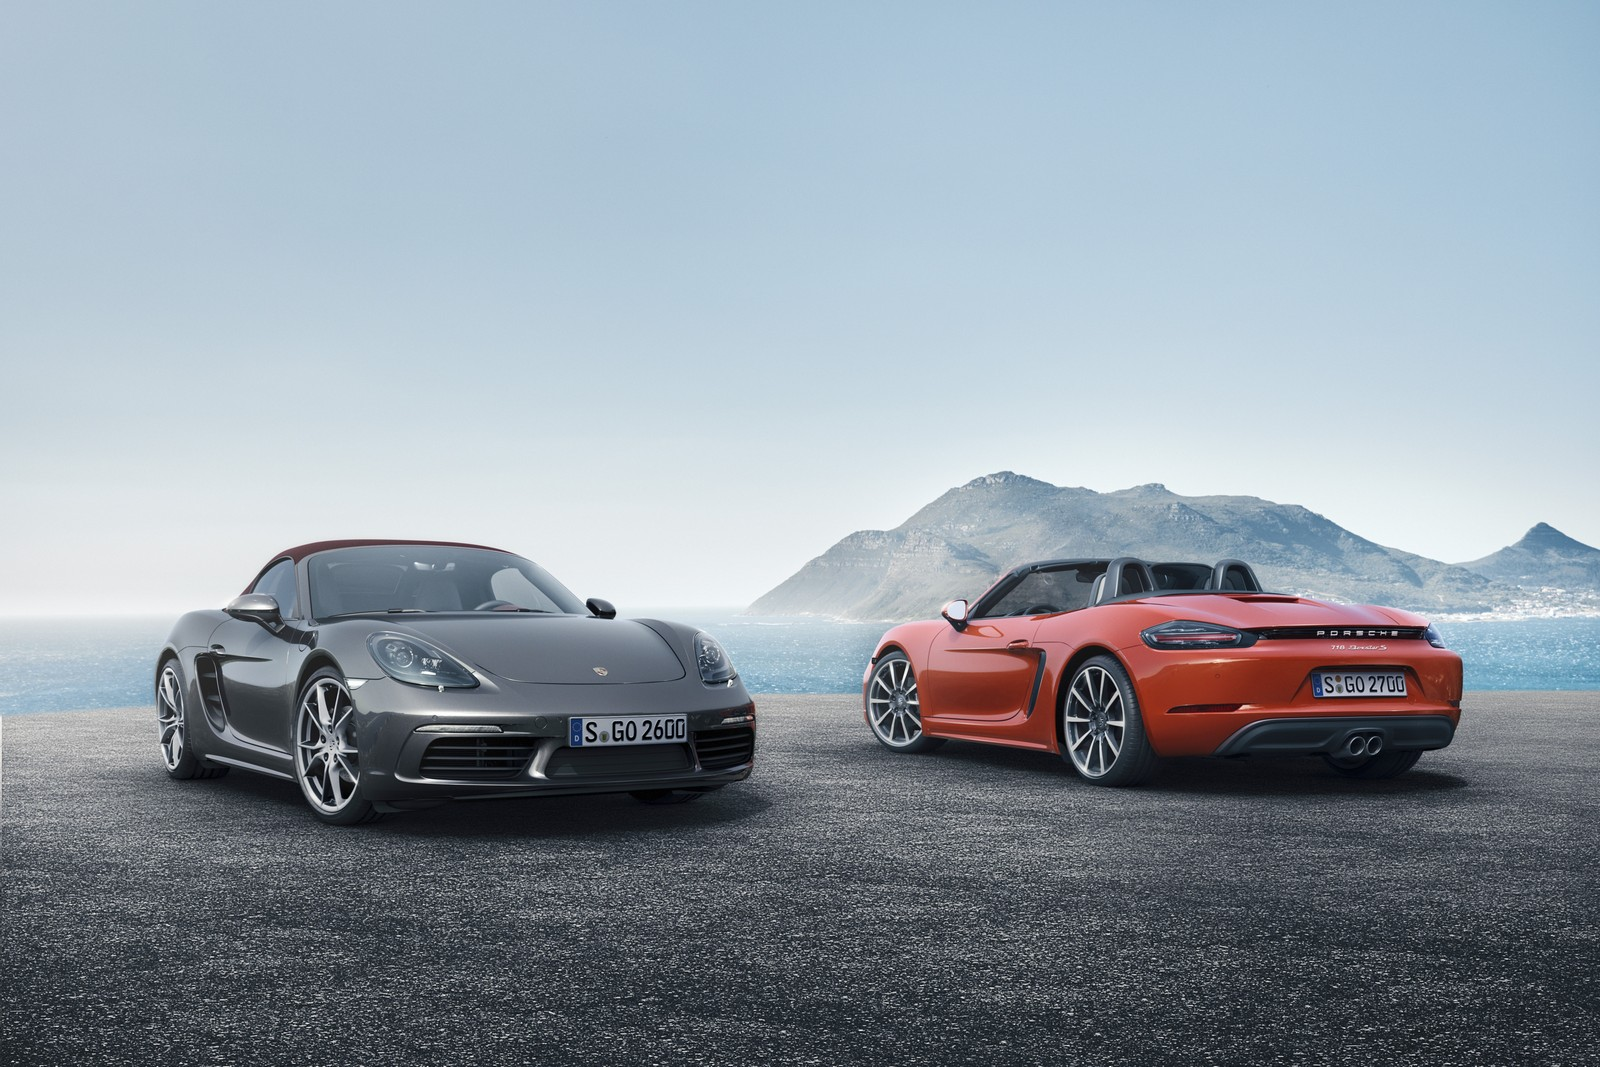 718 Boxster & 718 Boxster S